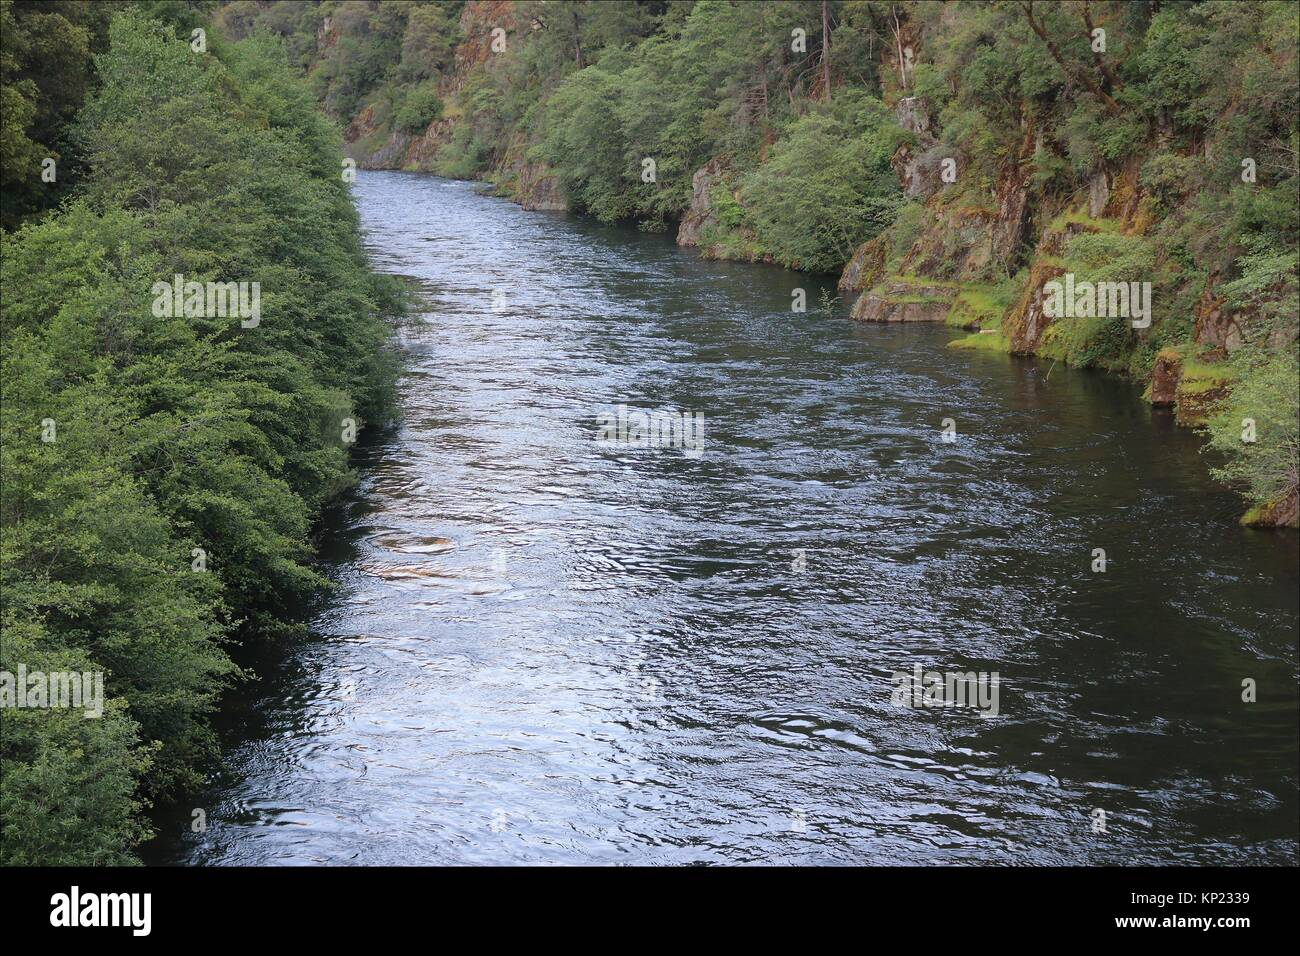 The American River flows swiftly at Poho Ridge near Pollock Pines, California. - Stock Image